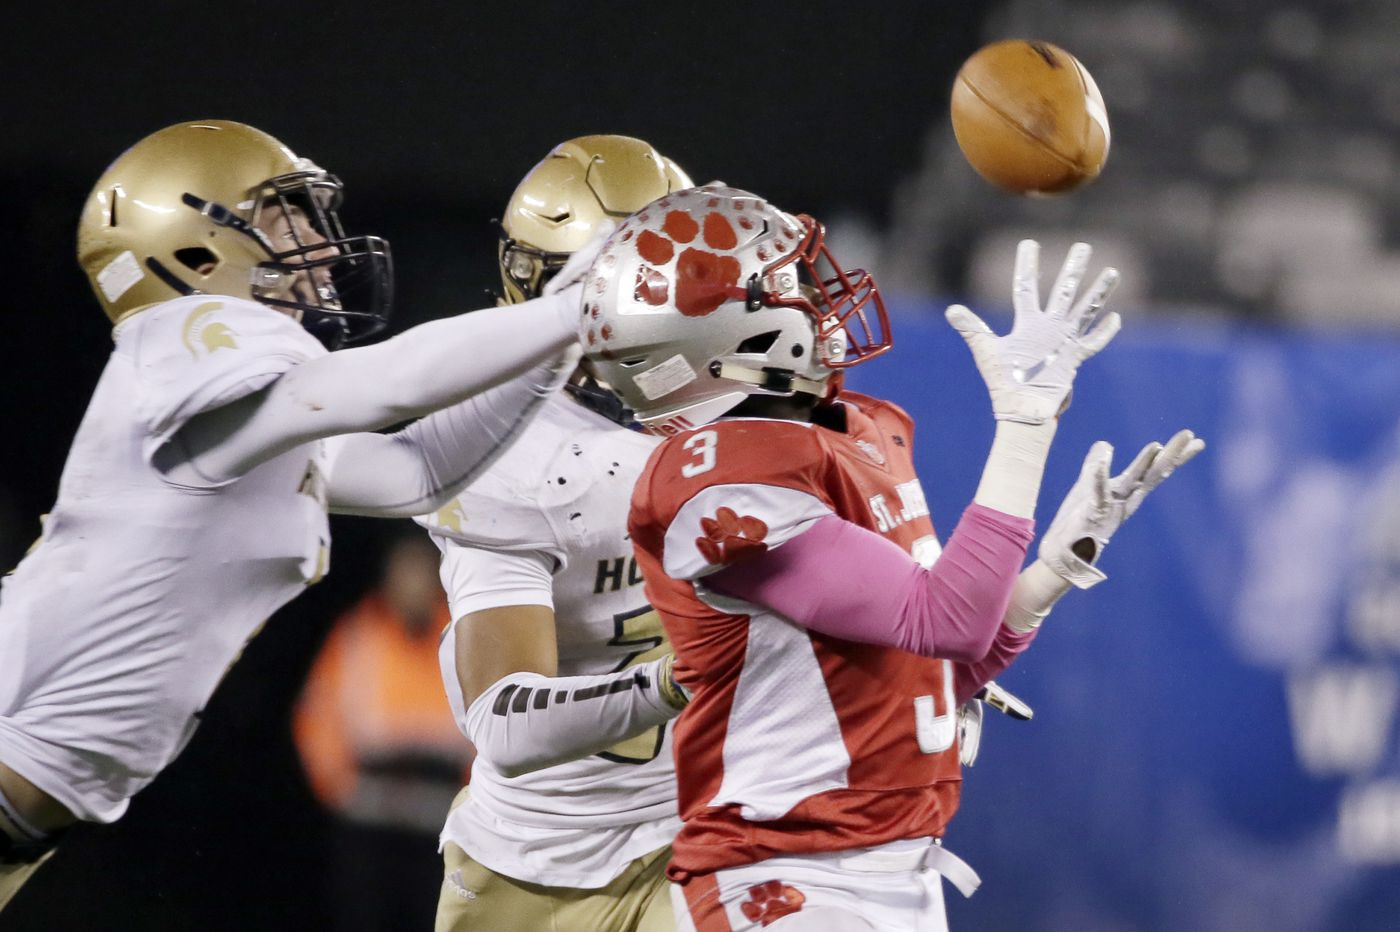 St. Joseph's Jada Byers finishes as leader with 35 touchdowns